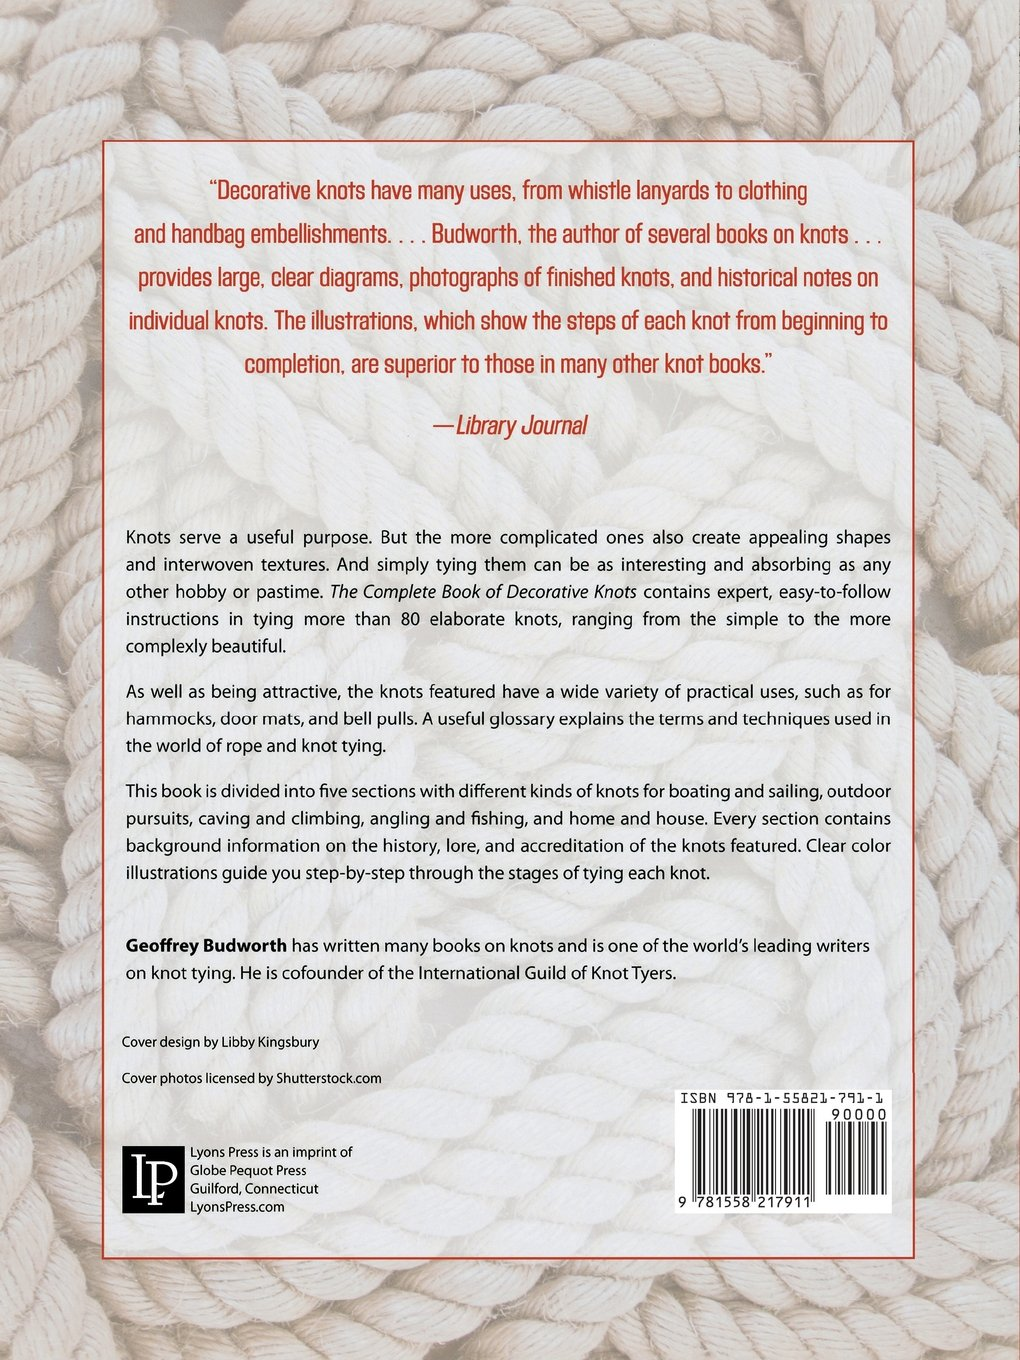 Complete Book Of Decorative Knots Geoffrey Budworth 9781558217911 Bowline Knot Diagram How To Tie A In Less Than 5 Seconds Books